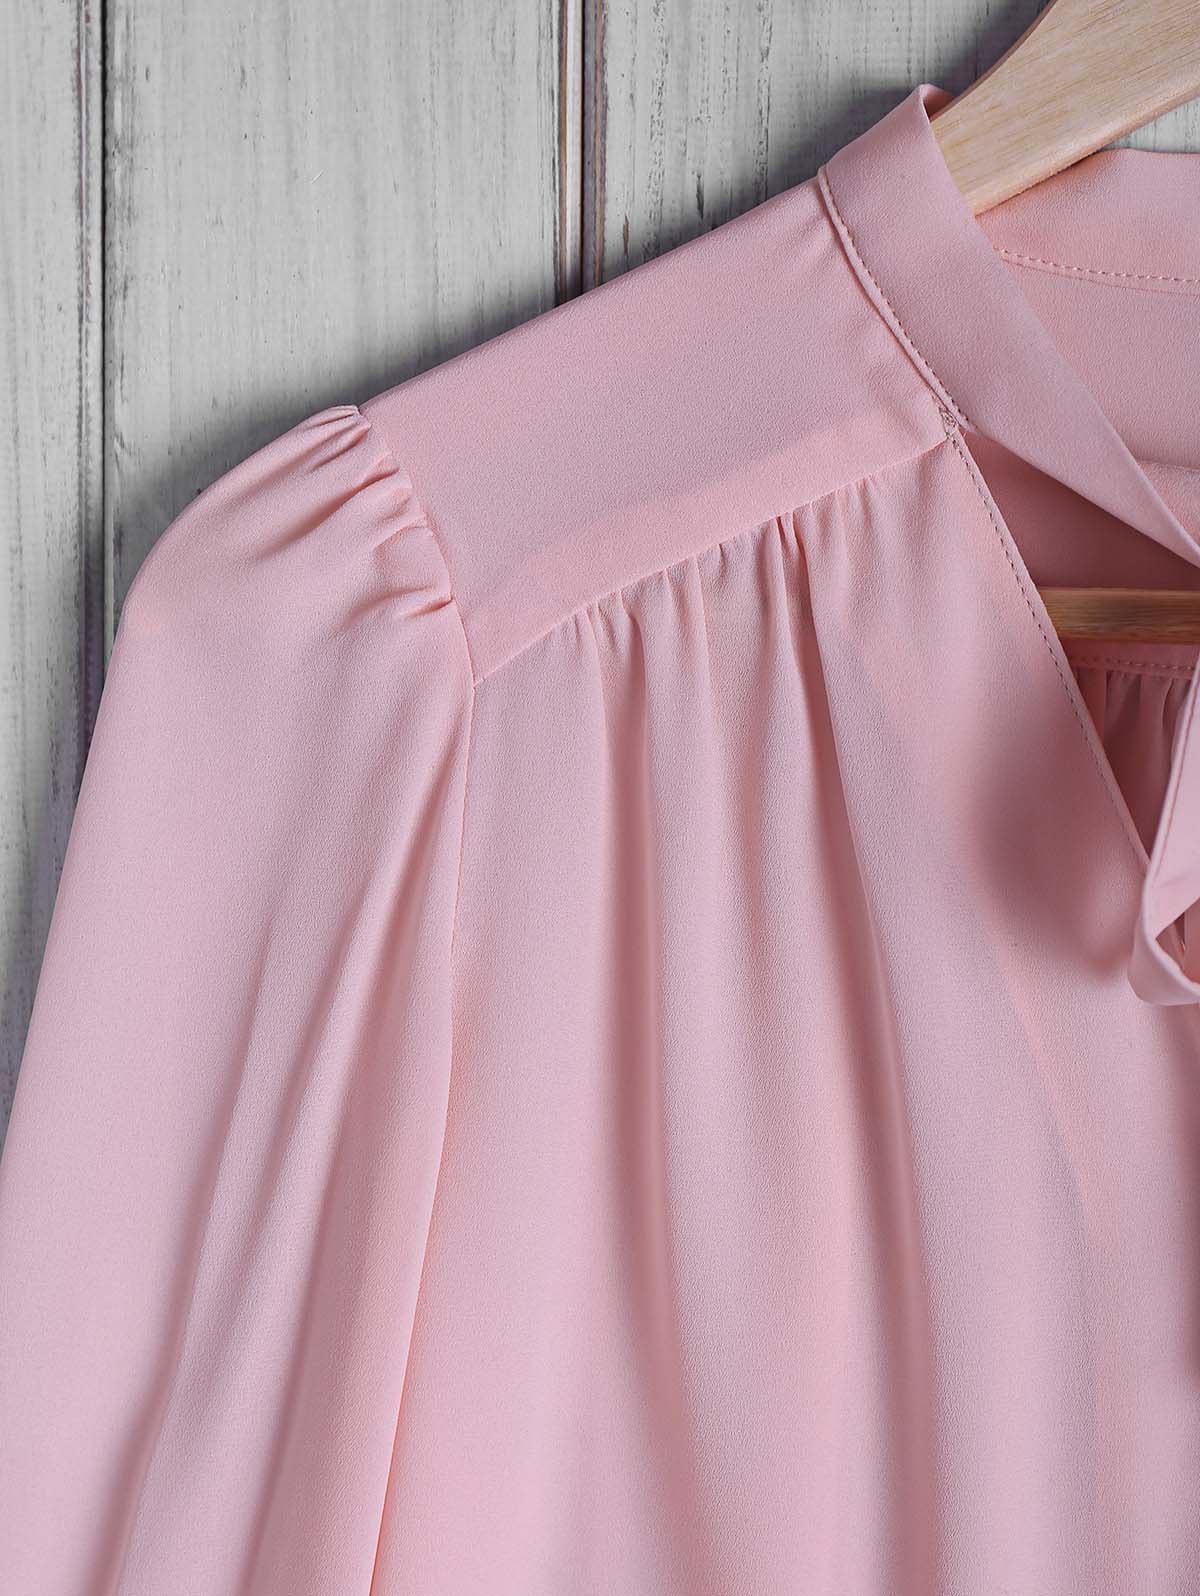 Stylish Women's Bow Tie Collar Solid Color Long Sleeve Blouse - PINK M